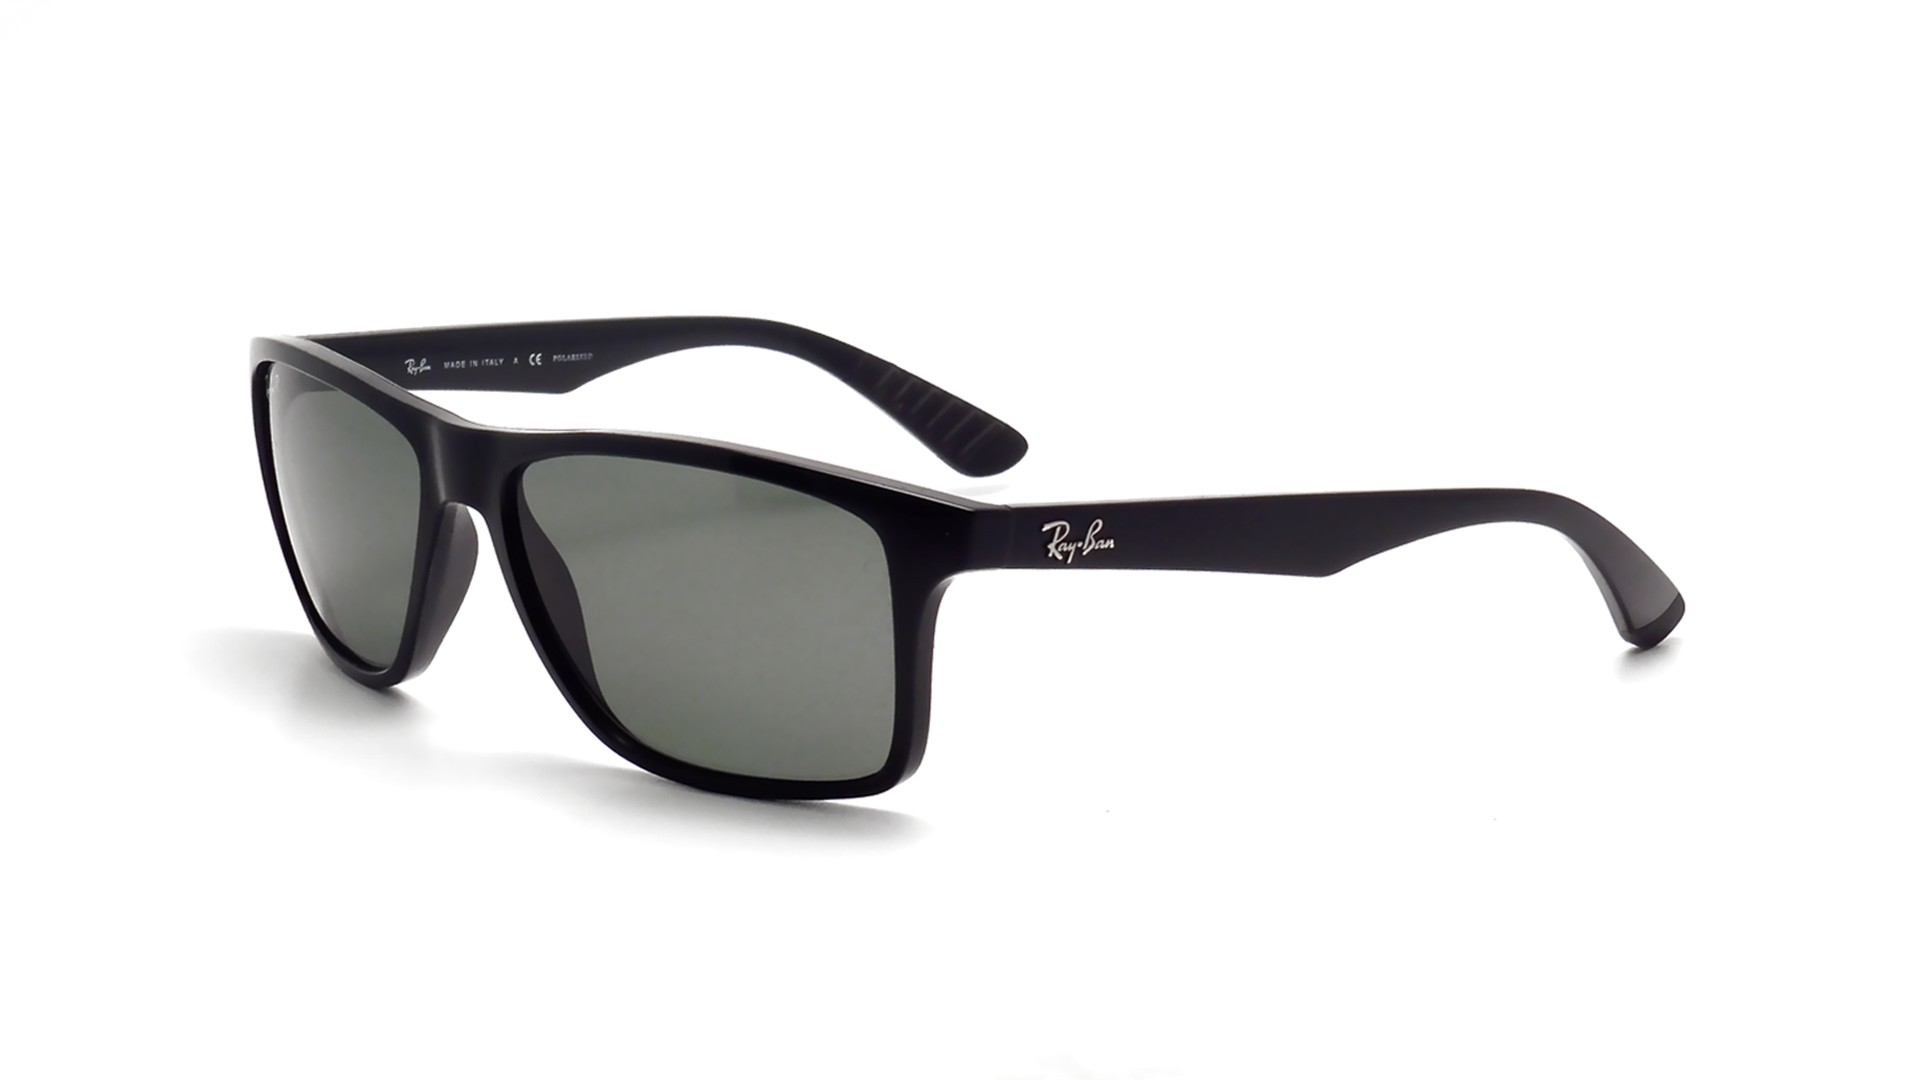 8ac24451cf ... Sunglasses Ray-Ban Active Lifestyle Black RB4234 6019A 58-16 Large  Polarized ...